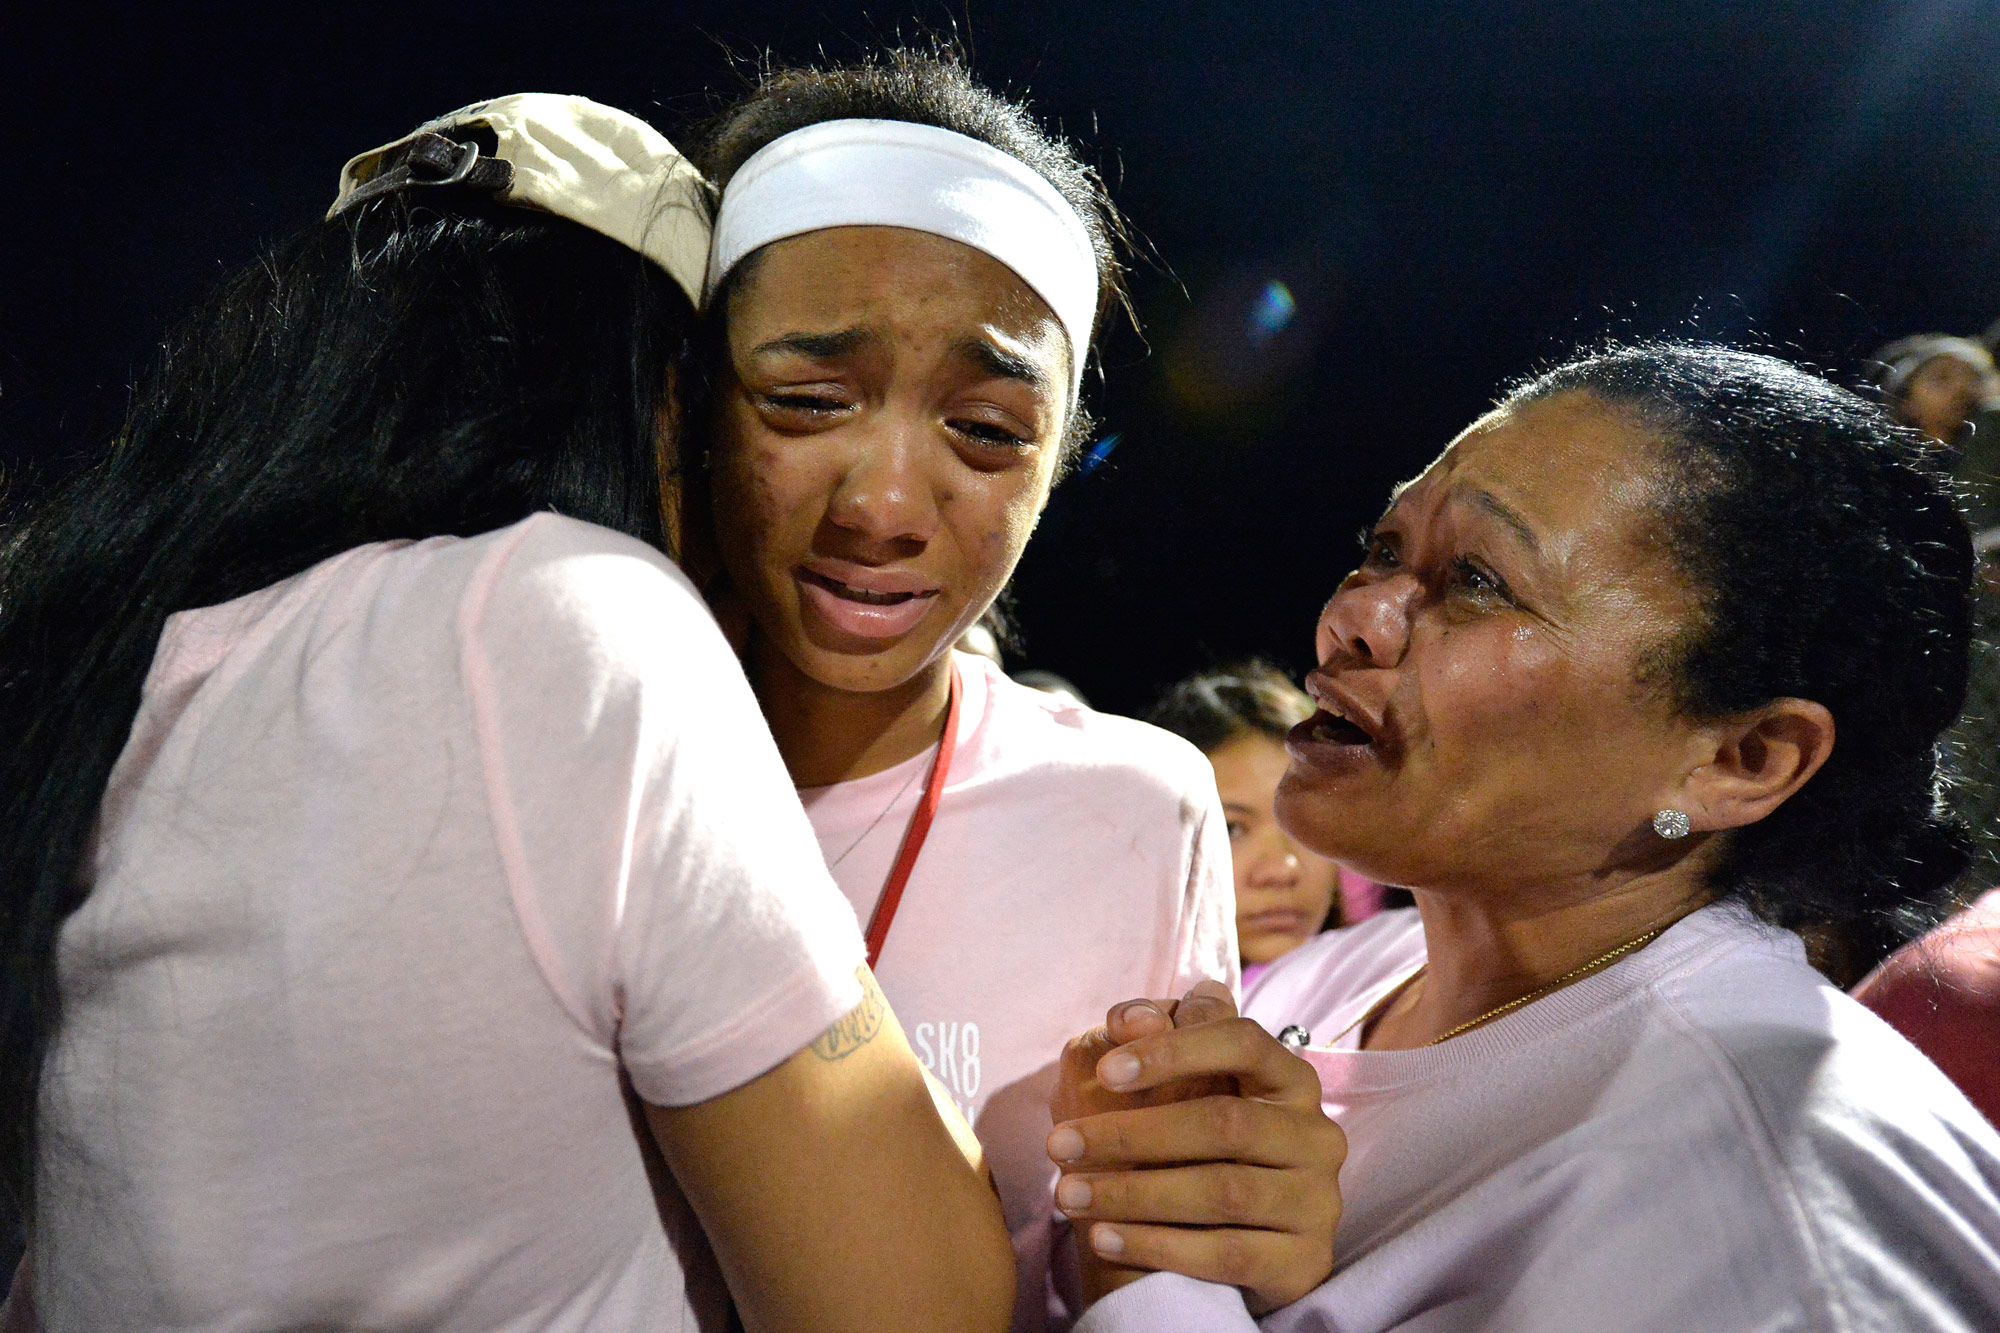 Classmates of Trinity Gay gathered in her memory at Lafayette High School, Monday, Oct. 17, 2016, in Lexington, Ky. Several thousand people, including Tyson Gay, turned out Monday night for a candlelight vigil in Kentucky to honor Gay's 15-year-old daughter, Trinity, who was fatally shot over the weekend.